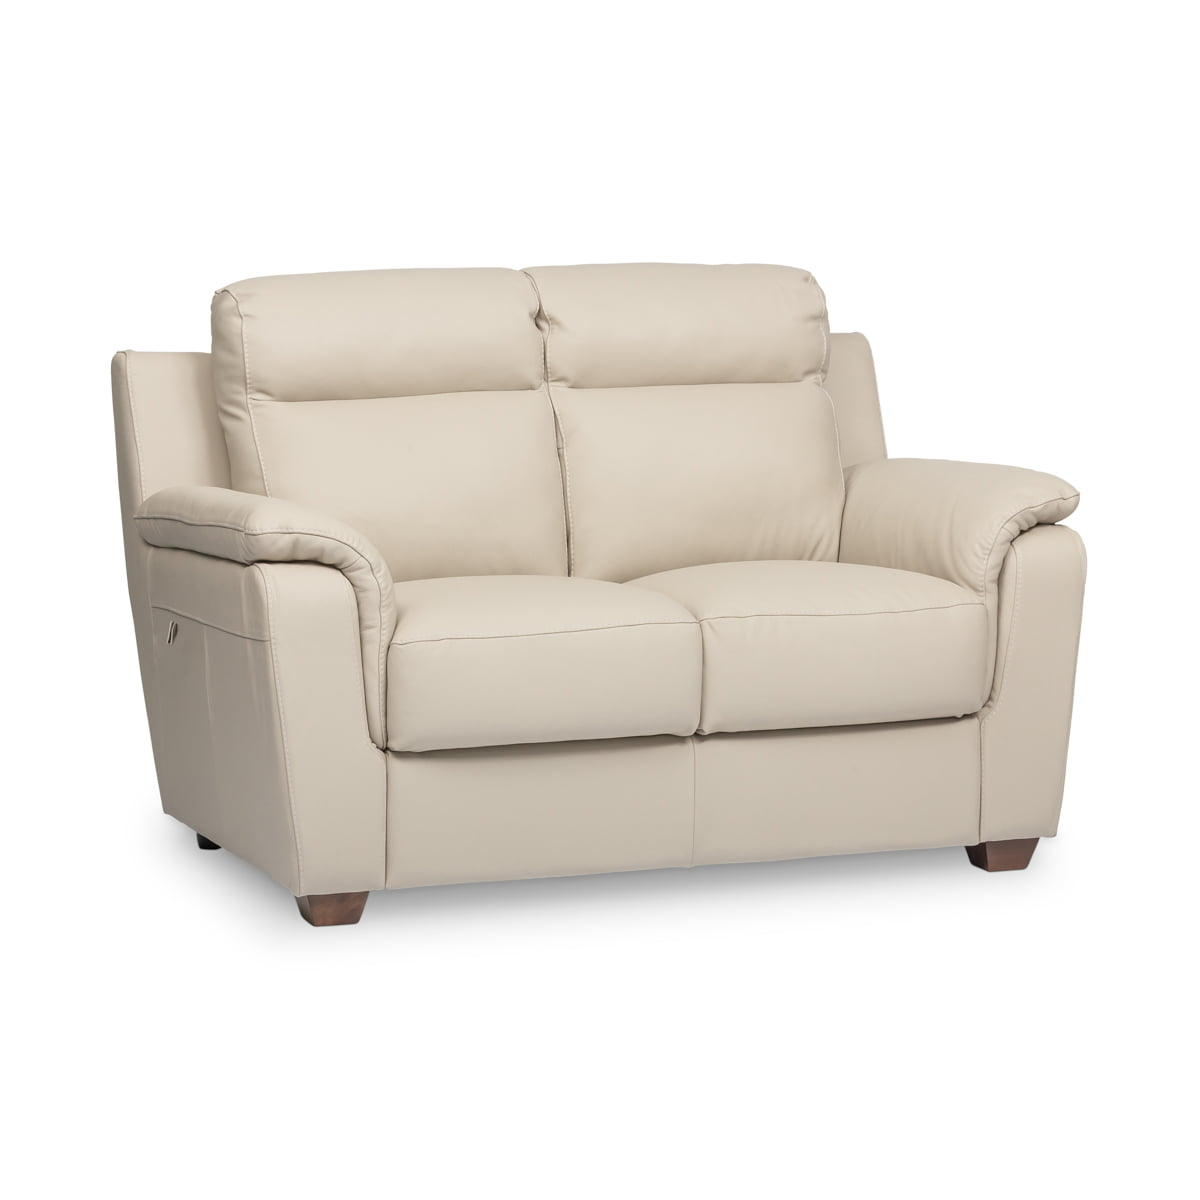 Empirio Leather 2 Seater